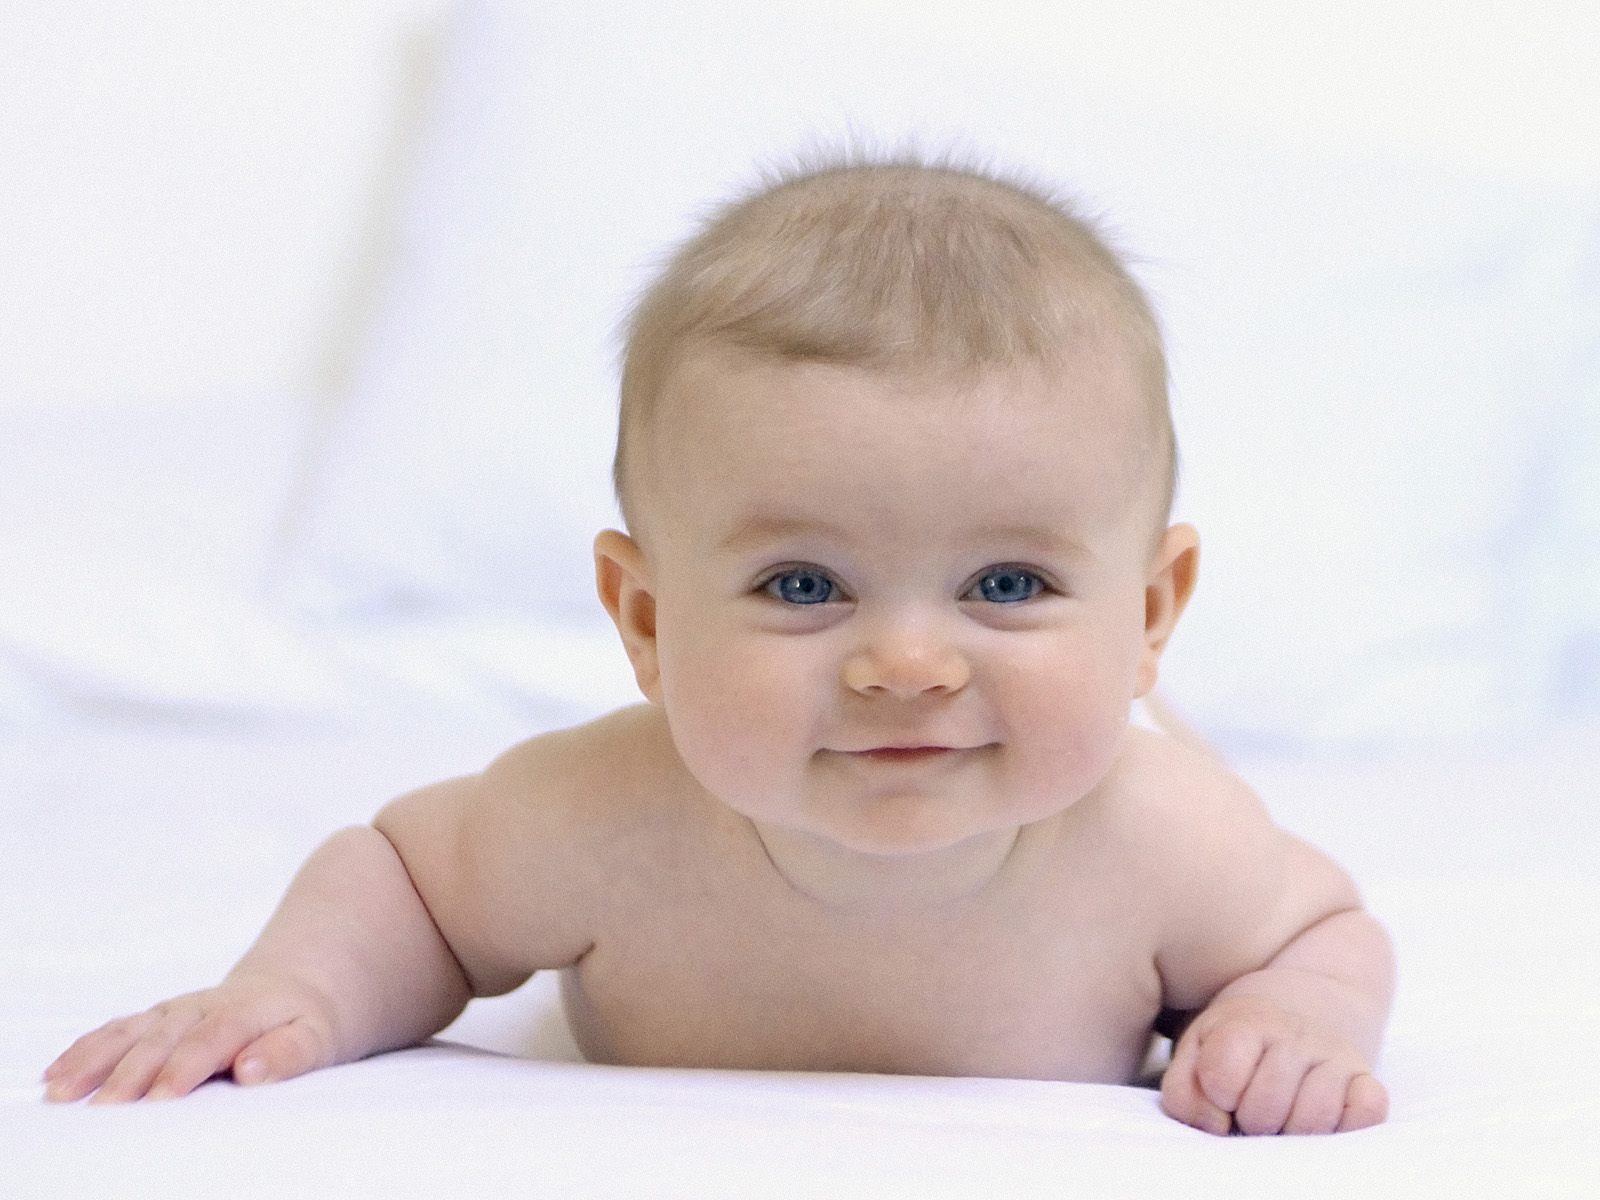 Baby with Short Hair 1750.28 Kb